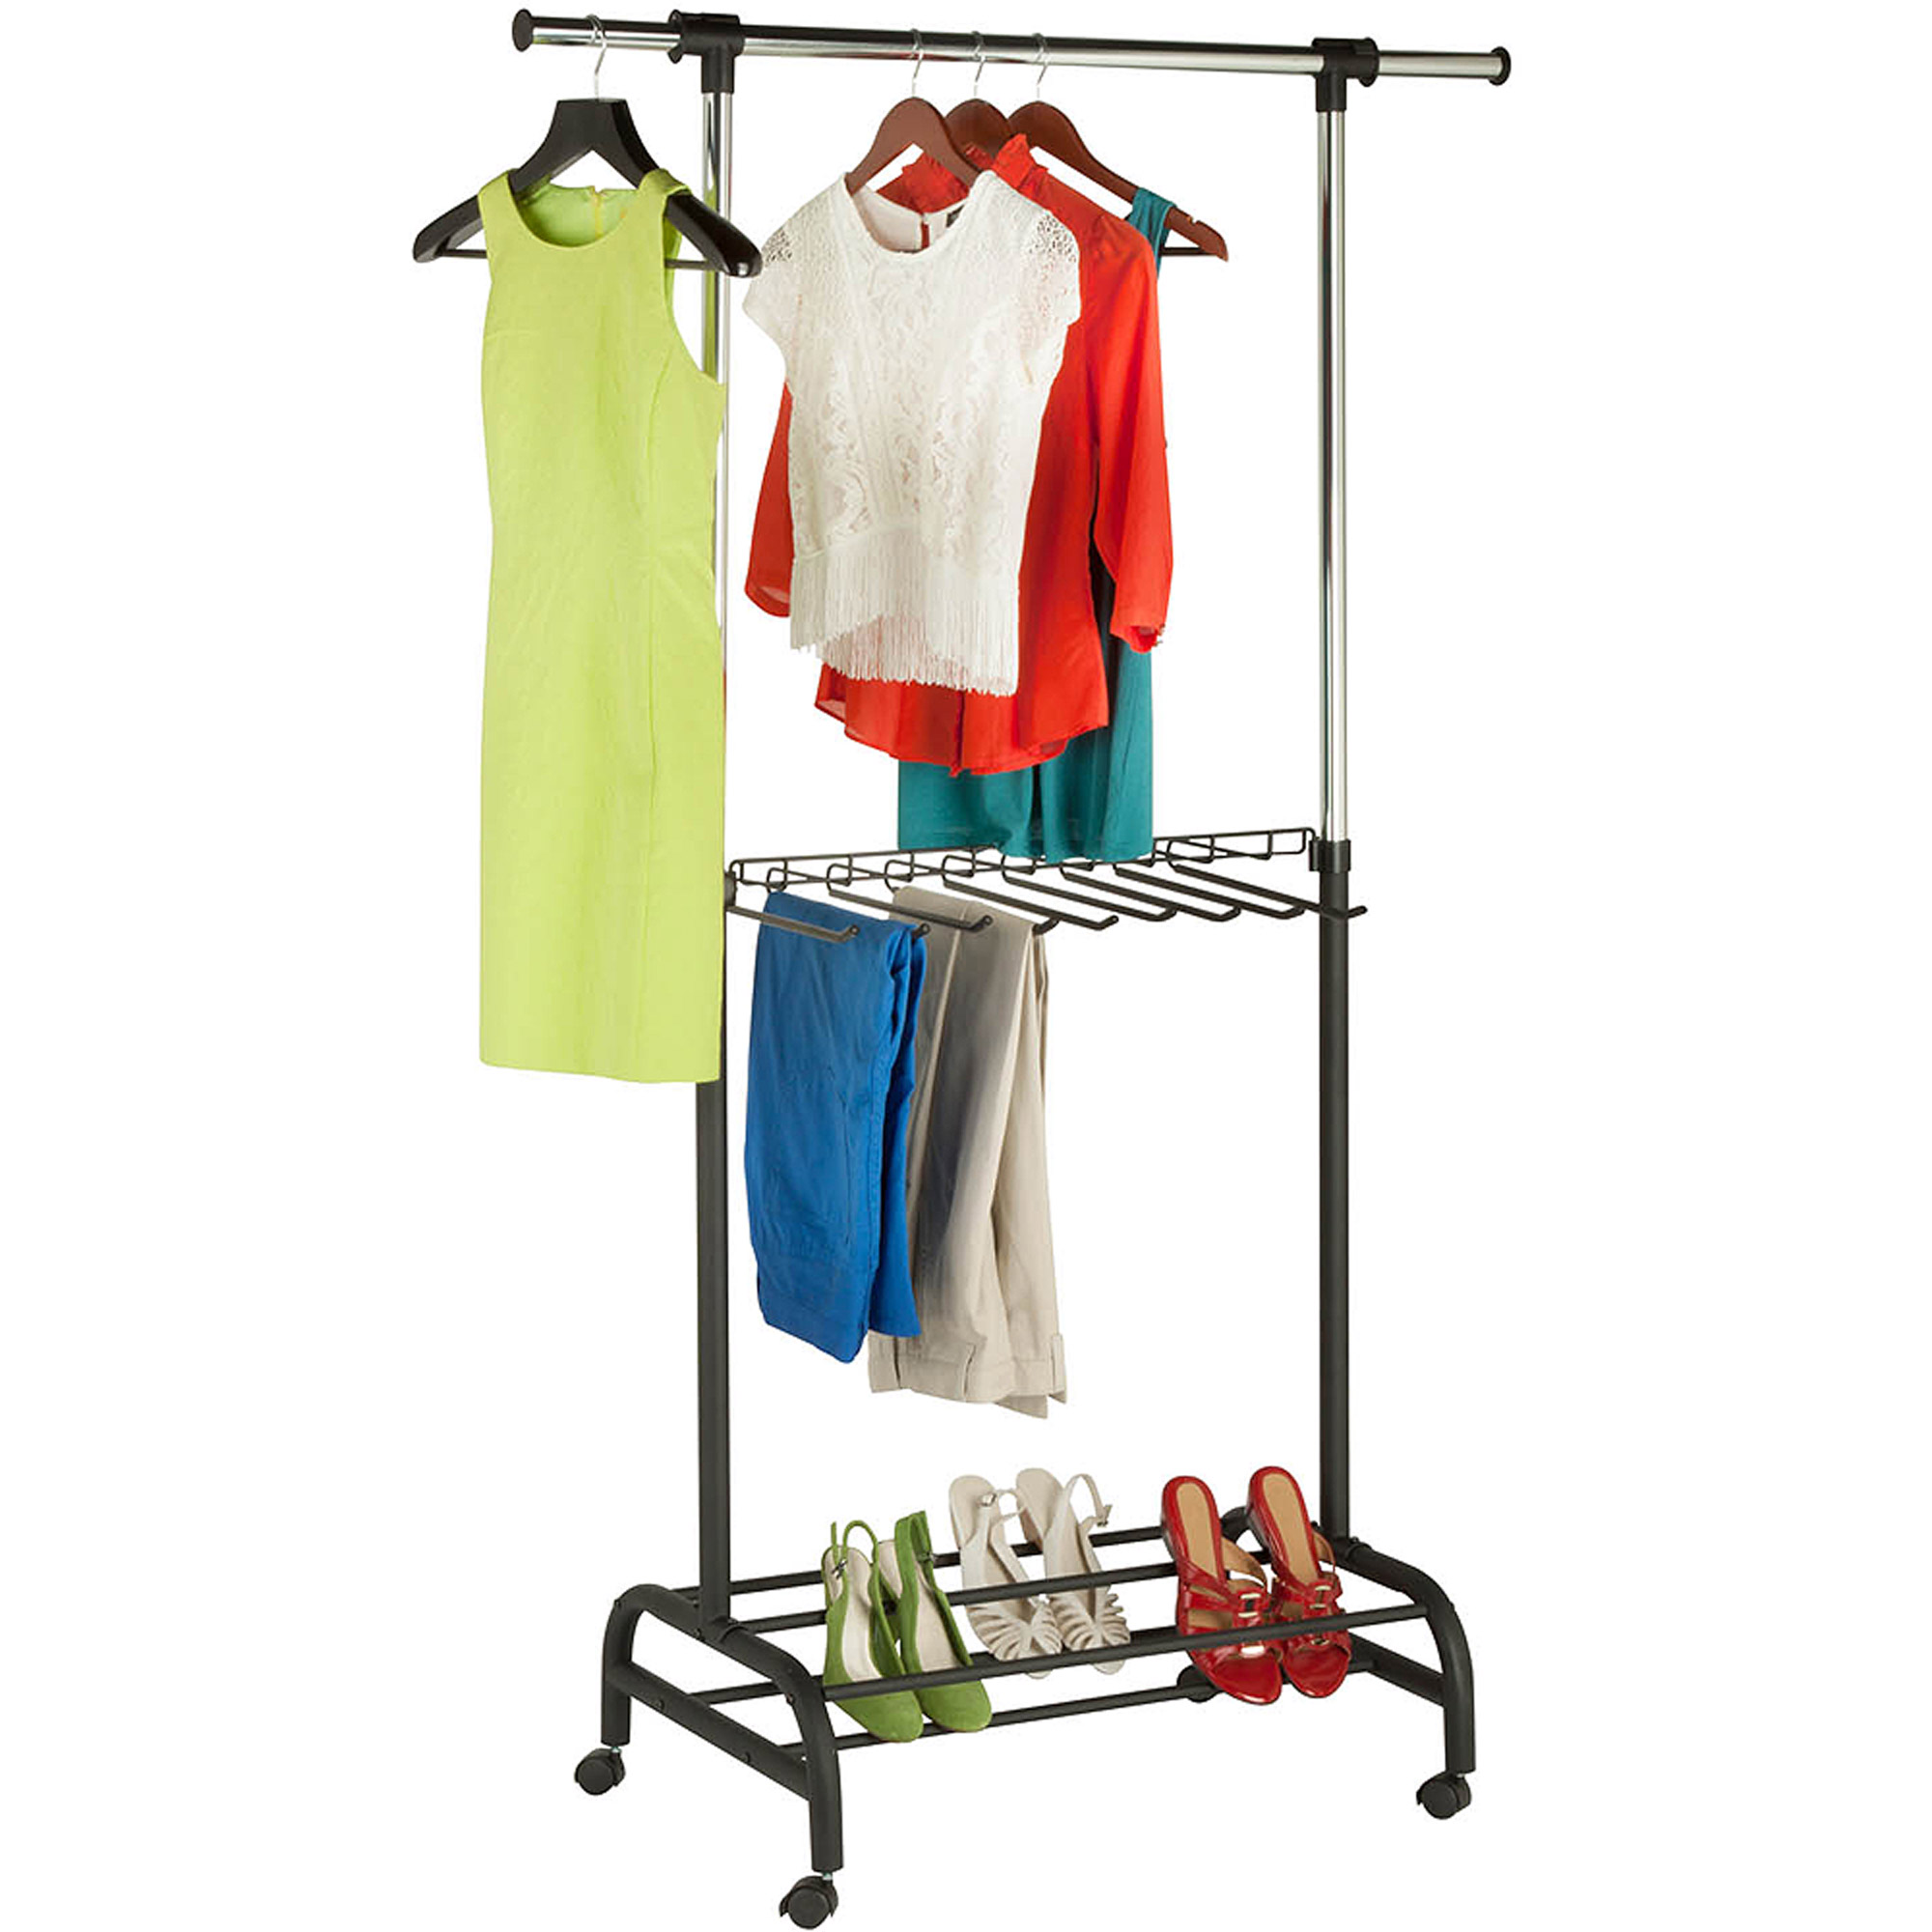 Honey Can Do Adjustable Rolling Garment Rack with Pant Rack, Chrome/Black